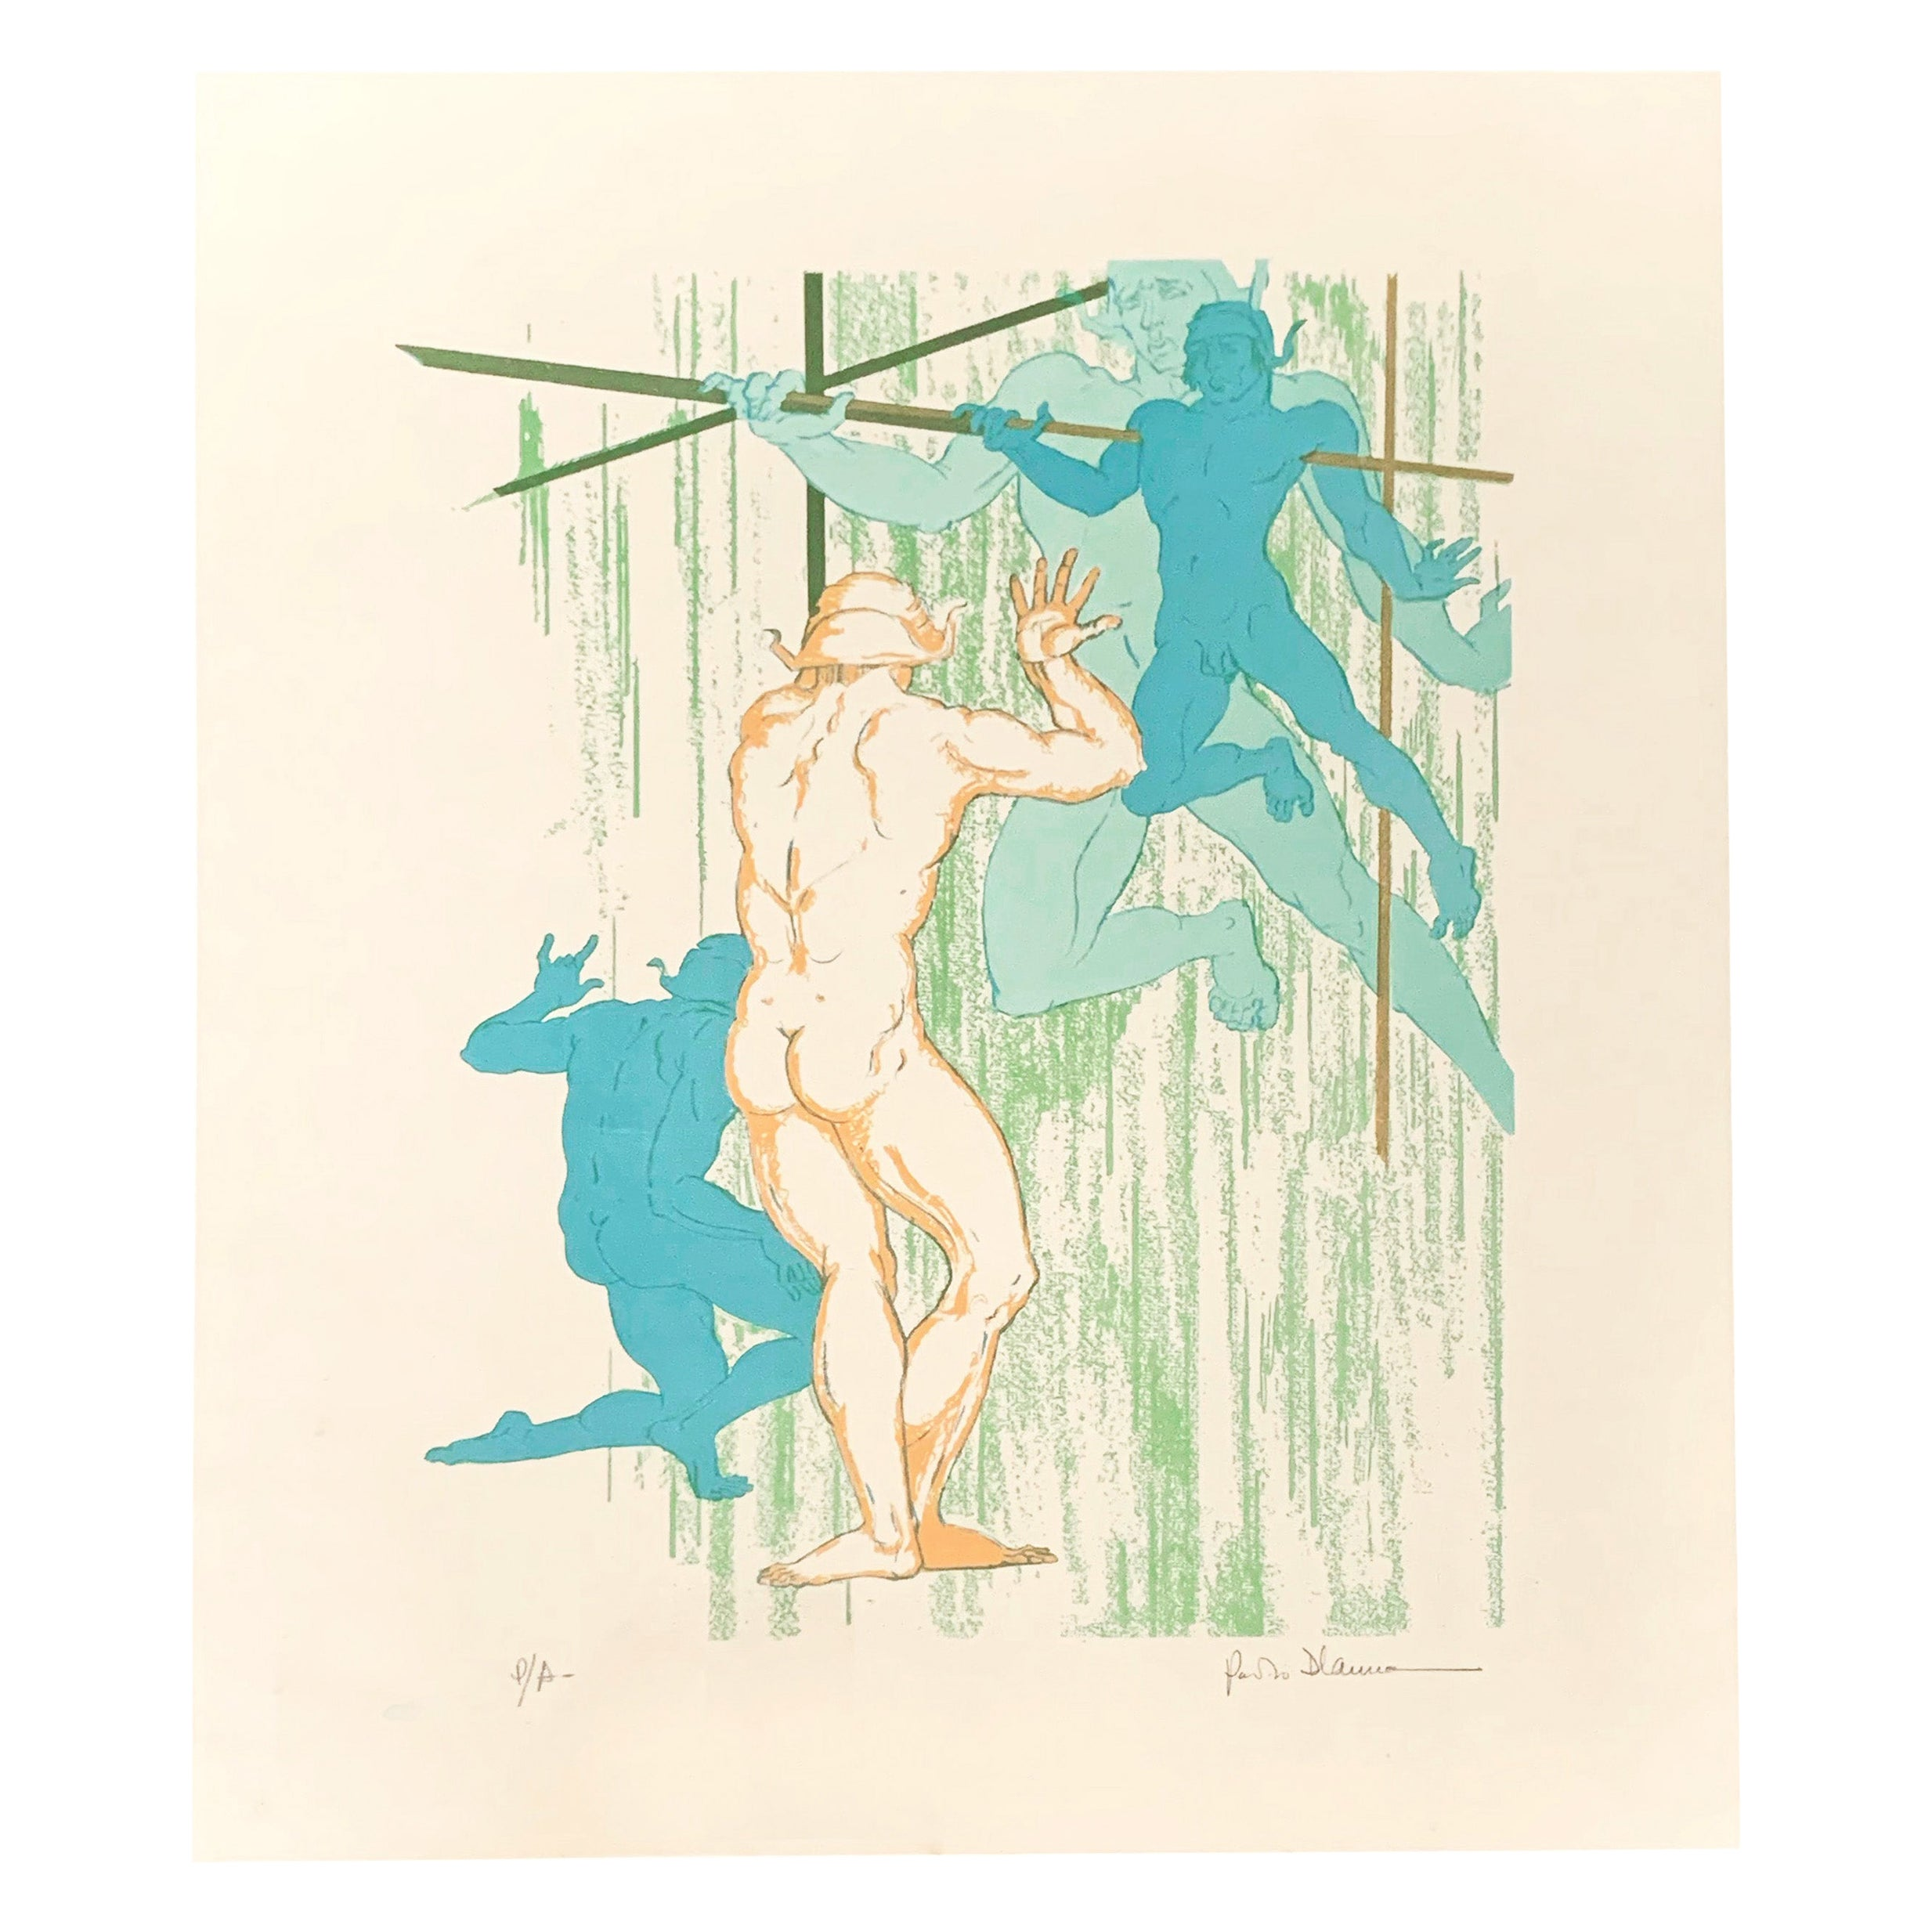 """""""Nude Dancers,"""" Rare Midcentury Color Print with Male Nudes by D'Anna"""